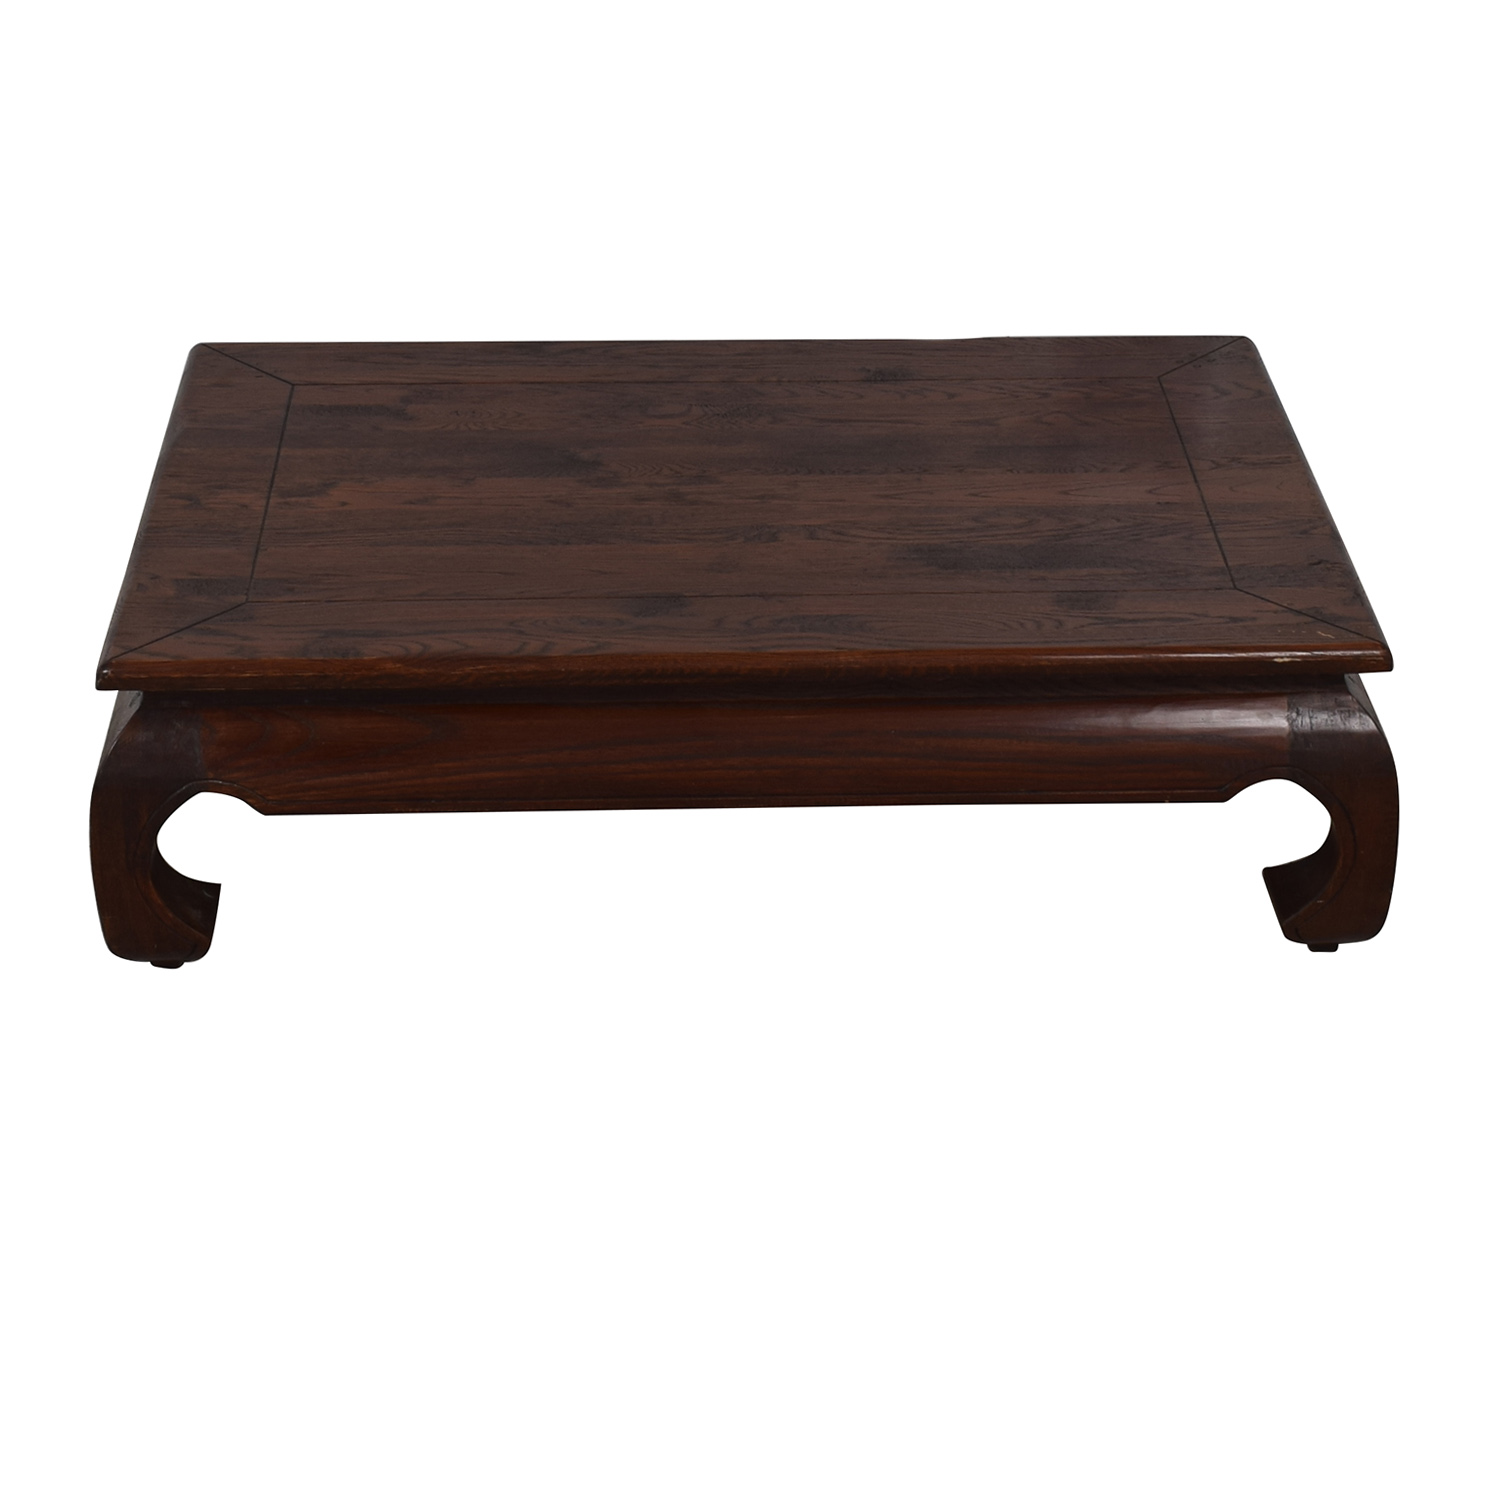 Arhaus Arhaus Coffee Table price